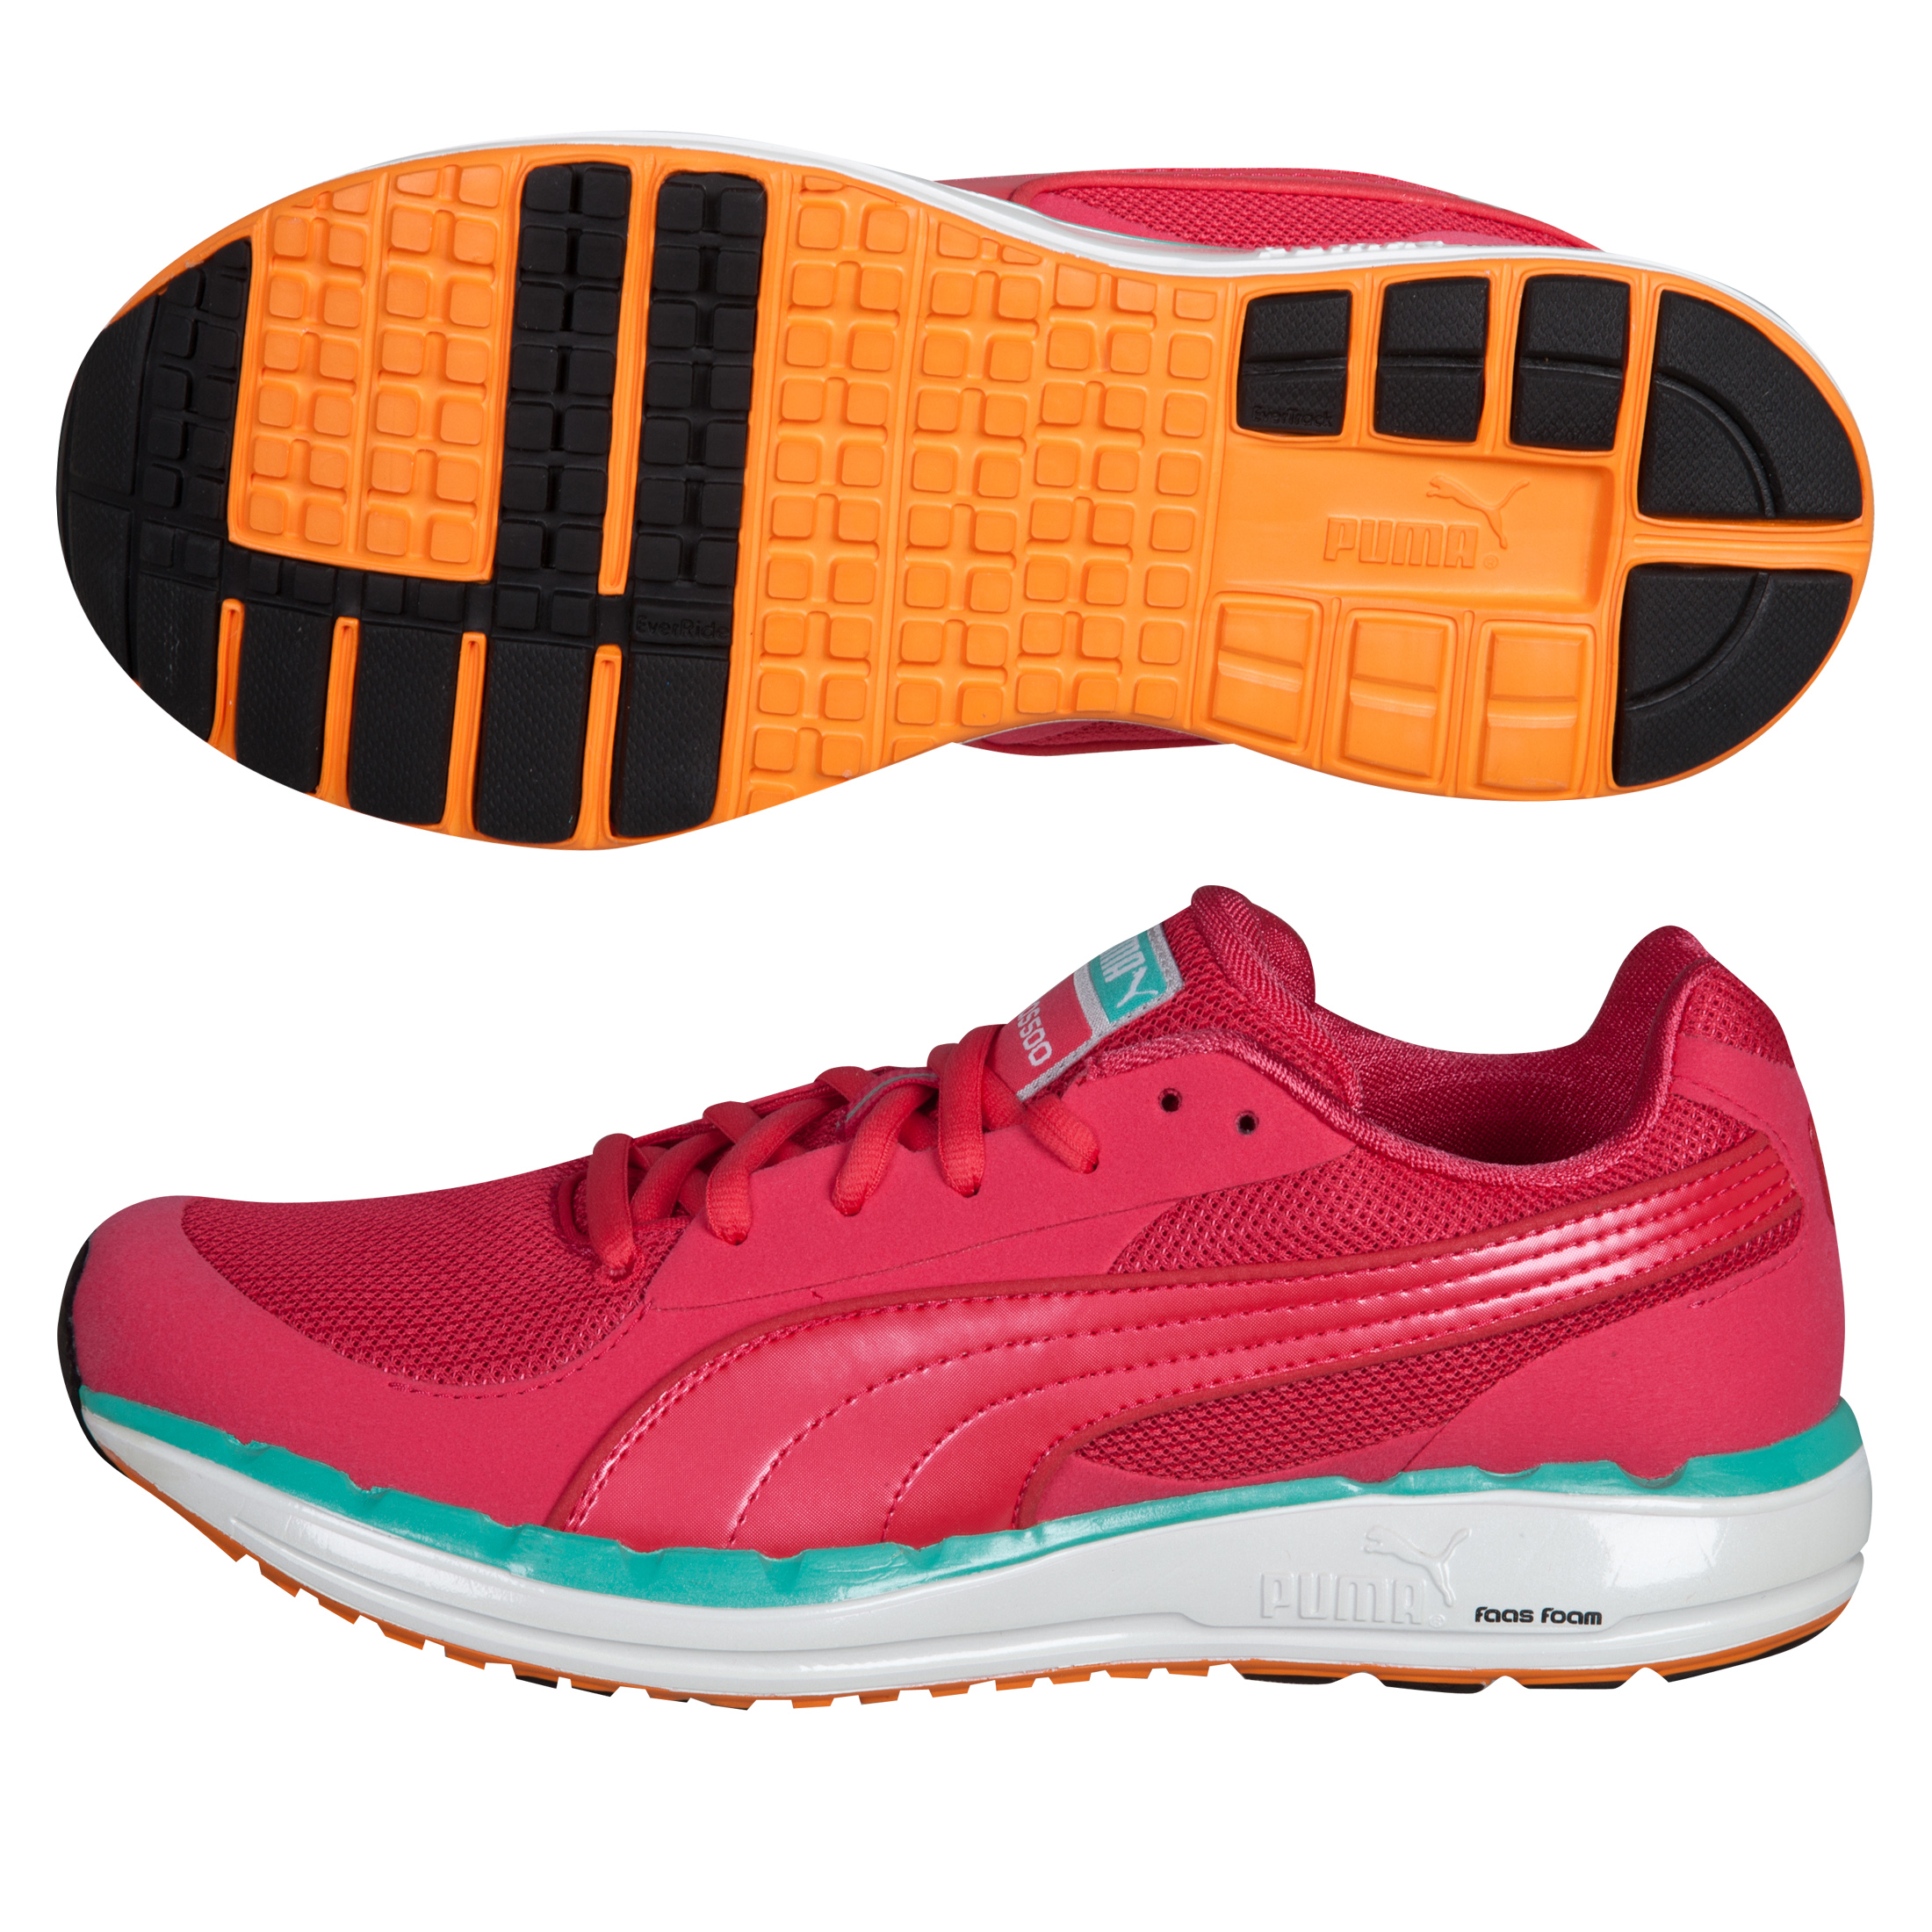 Puma Faas 500 Trainers - Teaberry Red/White Vermillion Orange - Womens